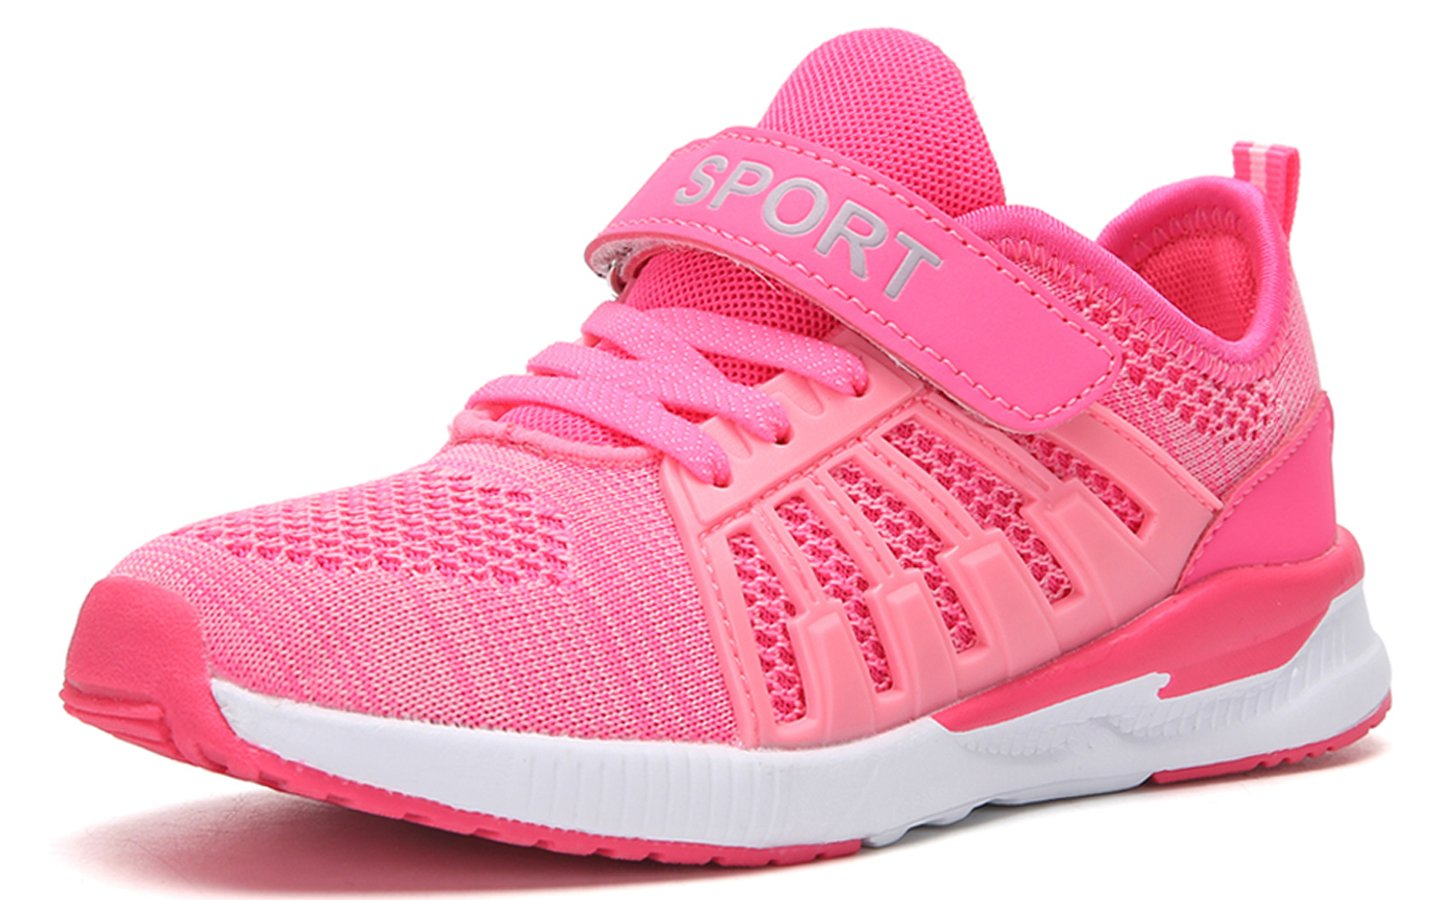 SunSunday Toddler Kid's Breathable Boys Girls Running Shoes Pink 29